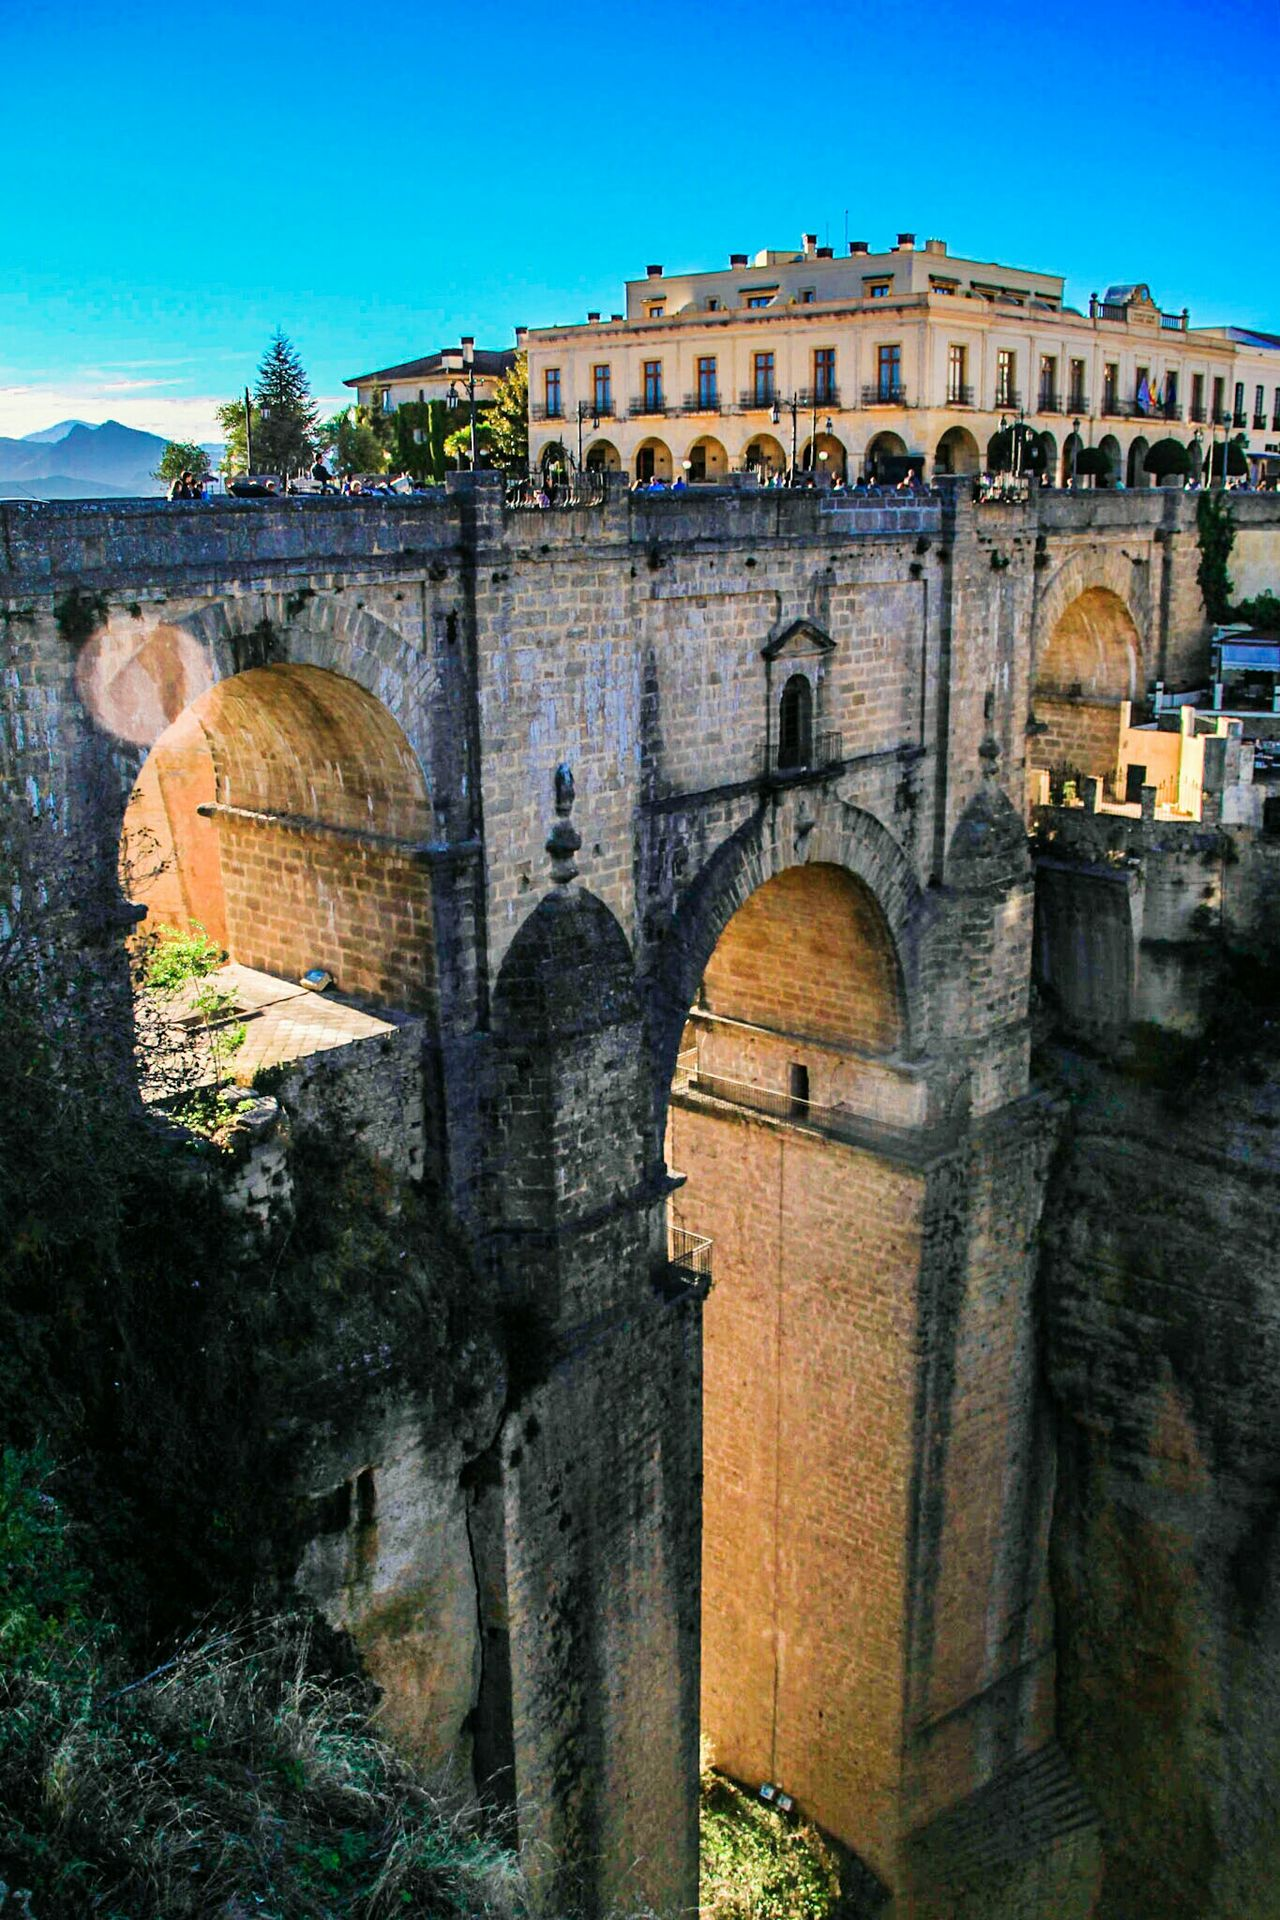 History Travel Destinations Architecture Built Structure The Past Arch Building Exterior Outdoors Ancient Sky City Medieval Check This Out EyeEm Gallery Ronda Ronda, Malaga Ronda Spain Sunlight Evening Light Bridge Stone Bridge Cliff Puente Nuevo De Ronda Puente Travel